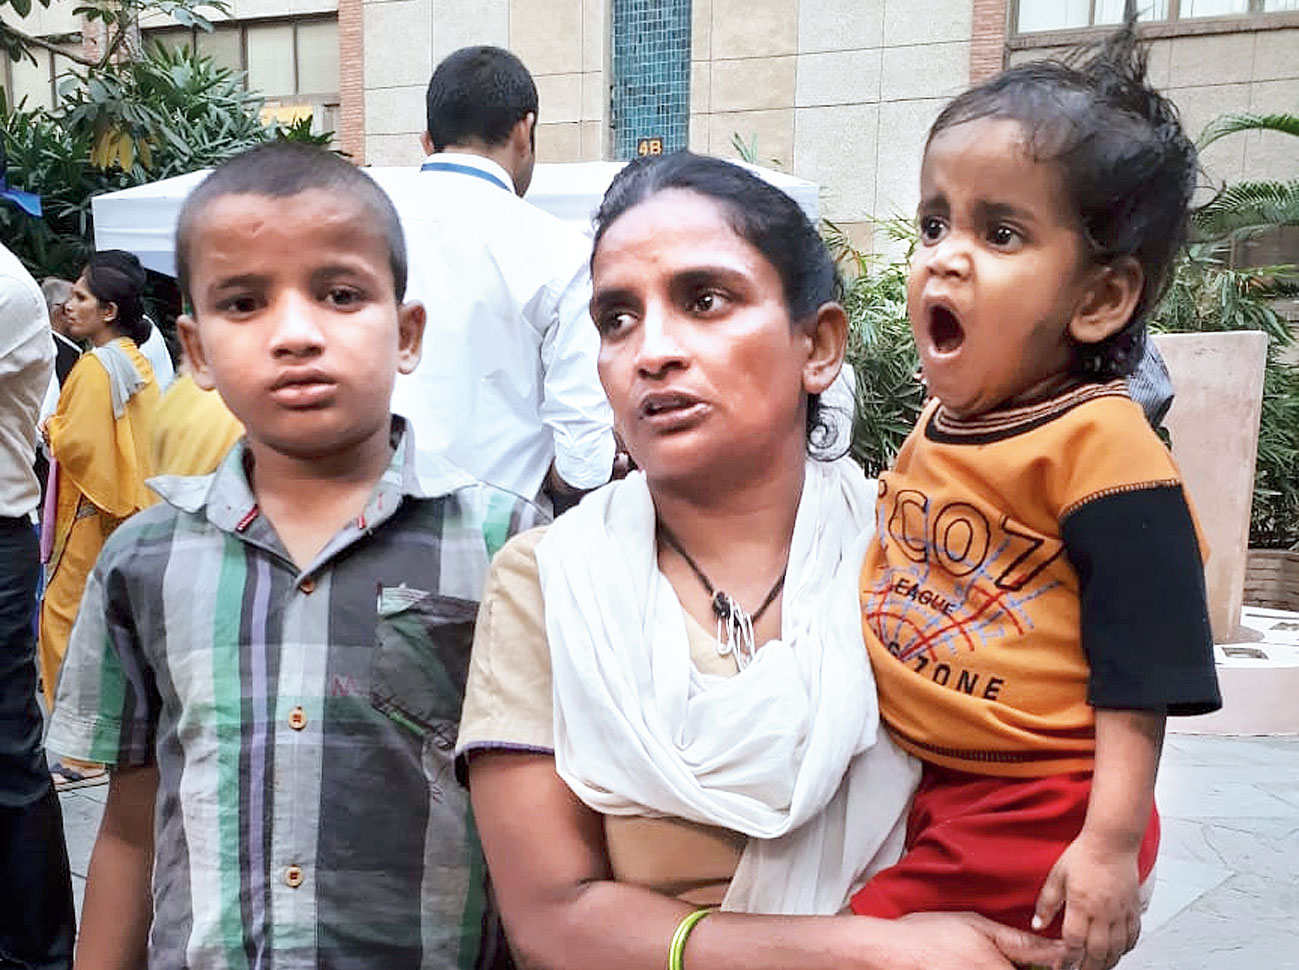 Rani with two of her children at the India Sanitation Forum on Saturday.